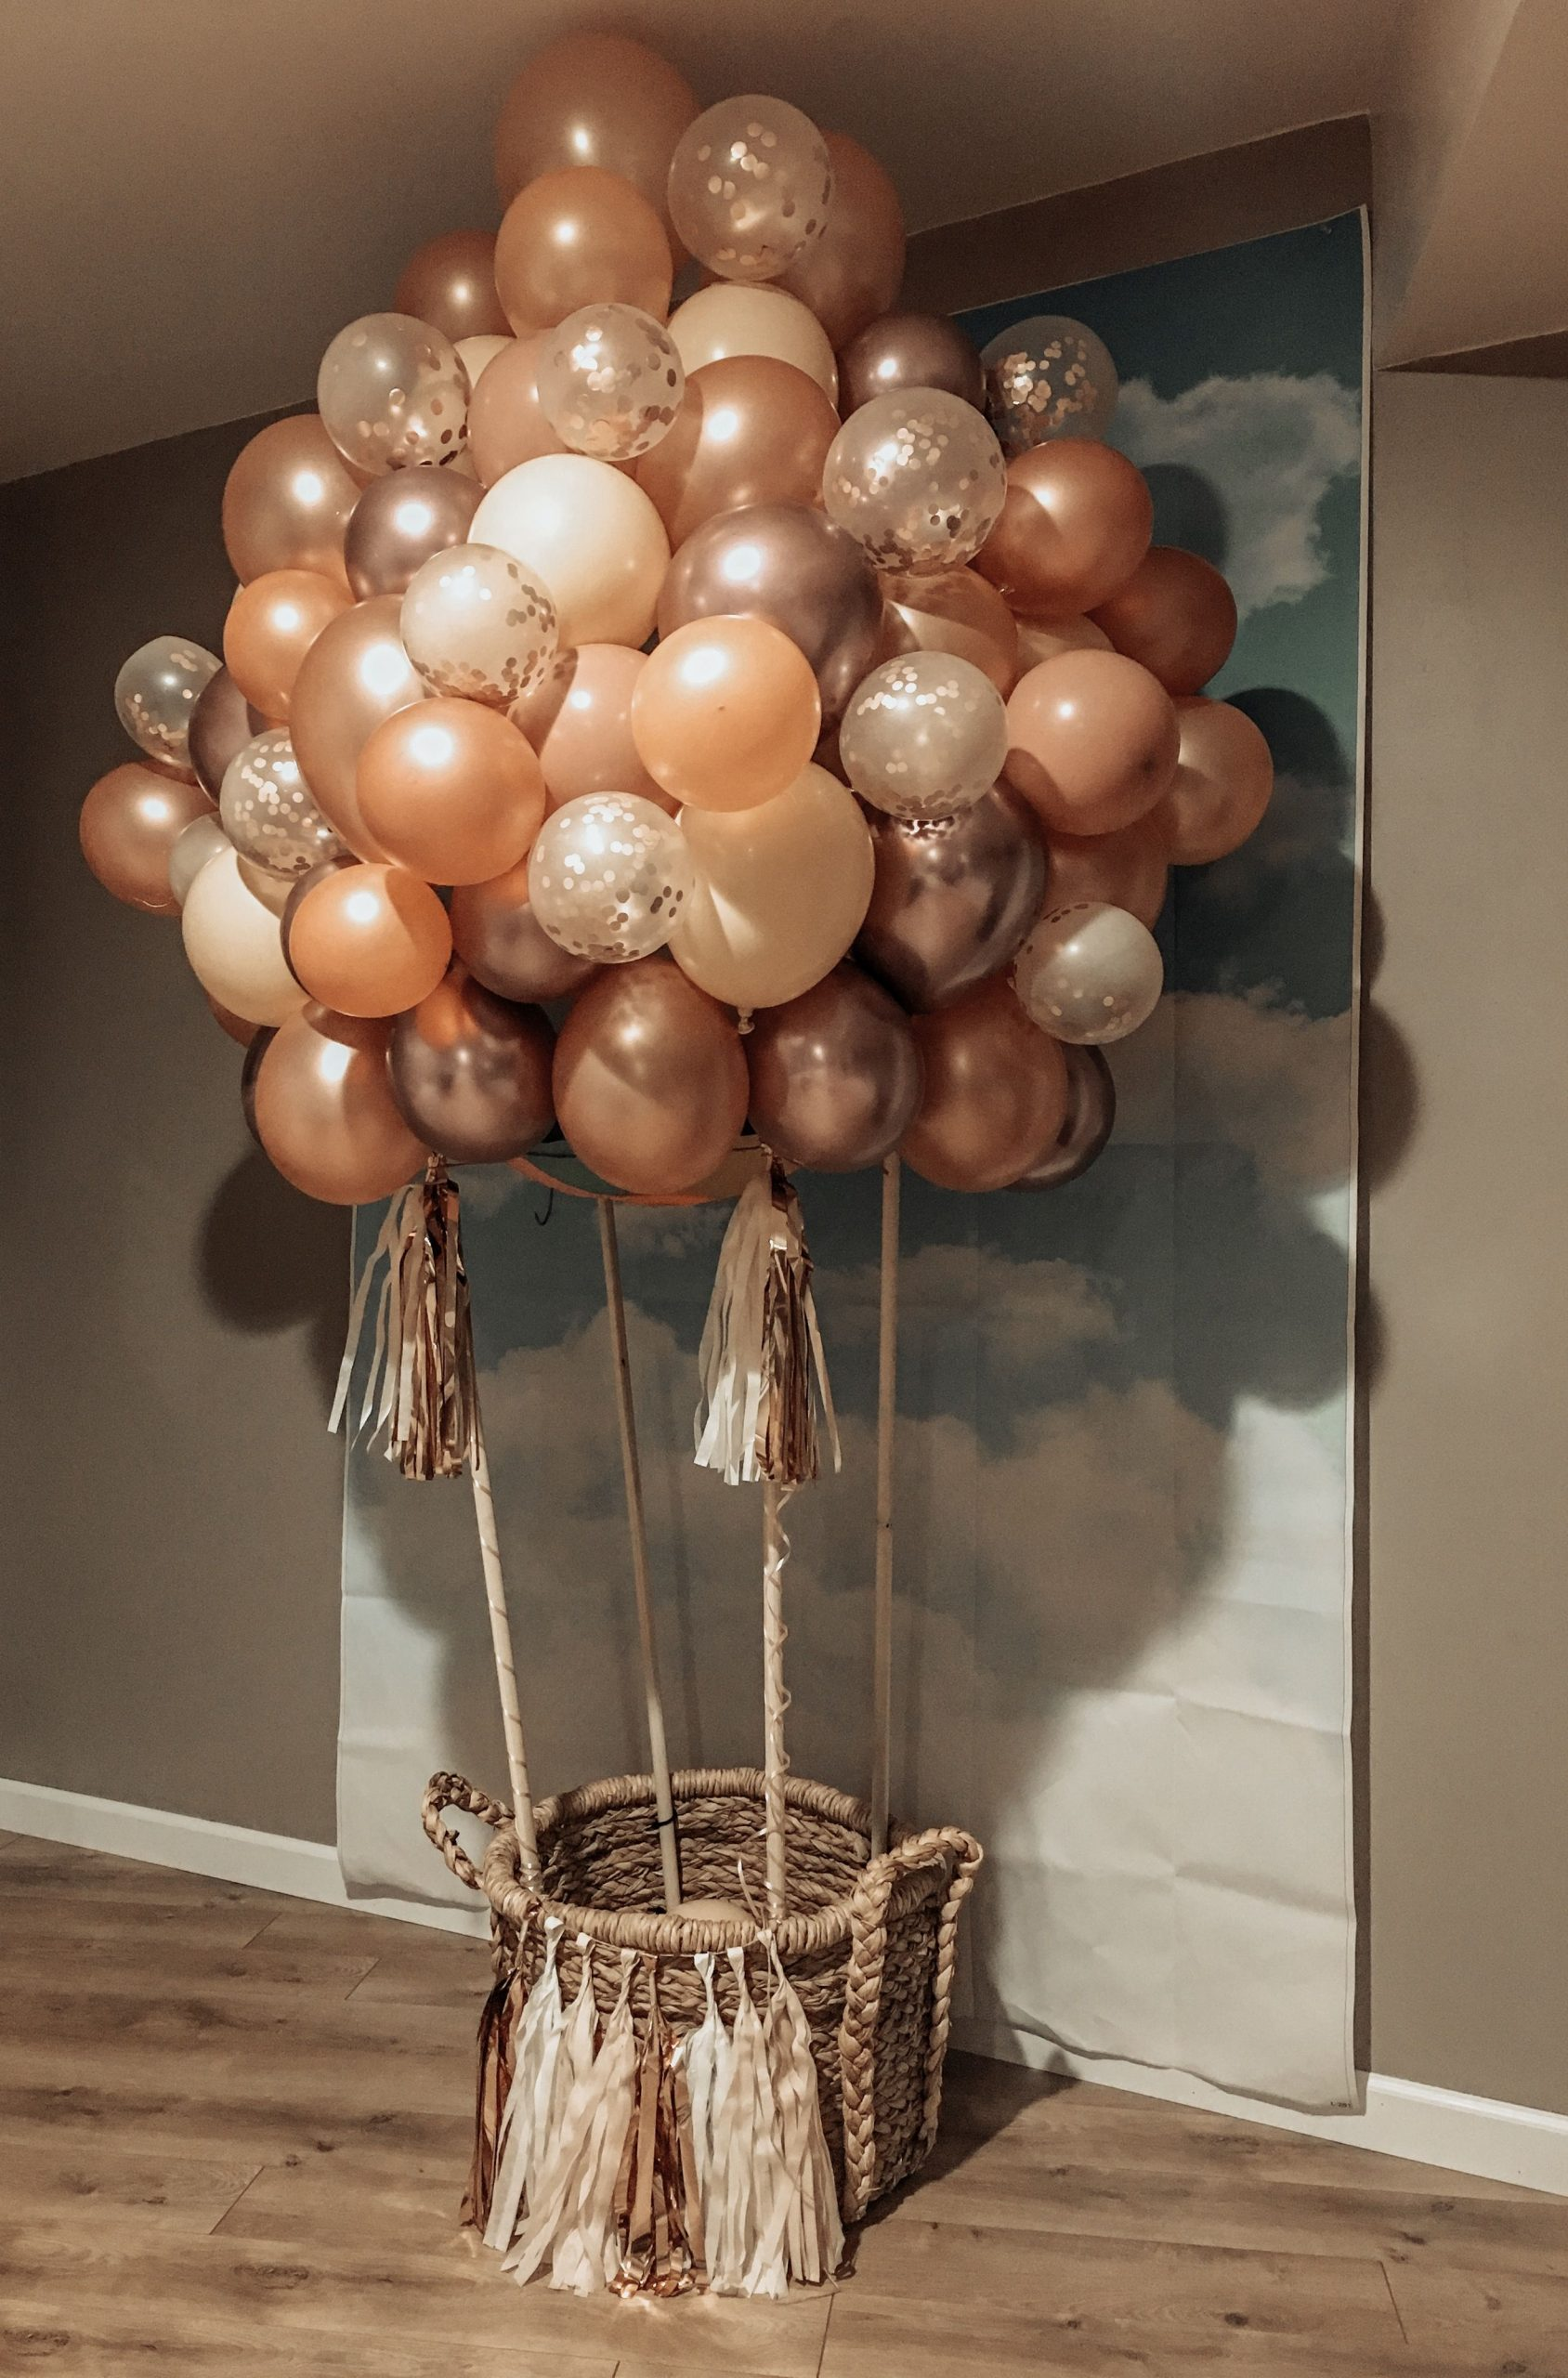 Hot Air Balloon Decorations DIY